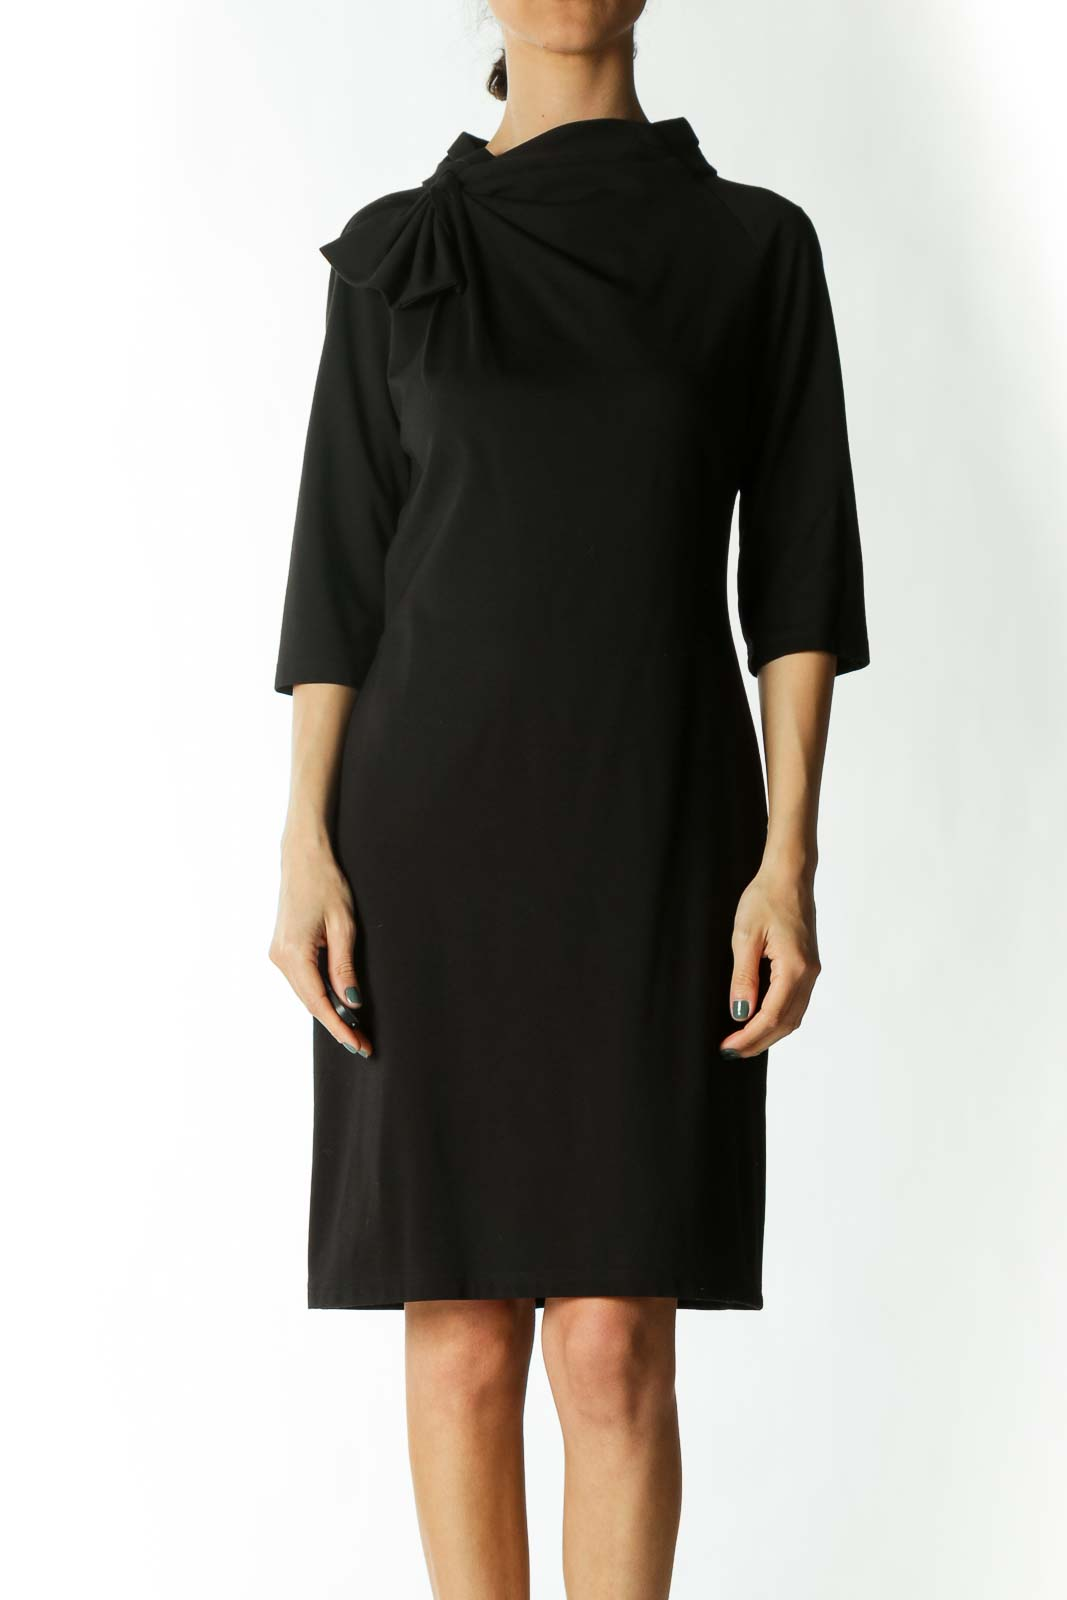 Black Neck Bow Detail 3/4 Sleeve Day Dress